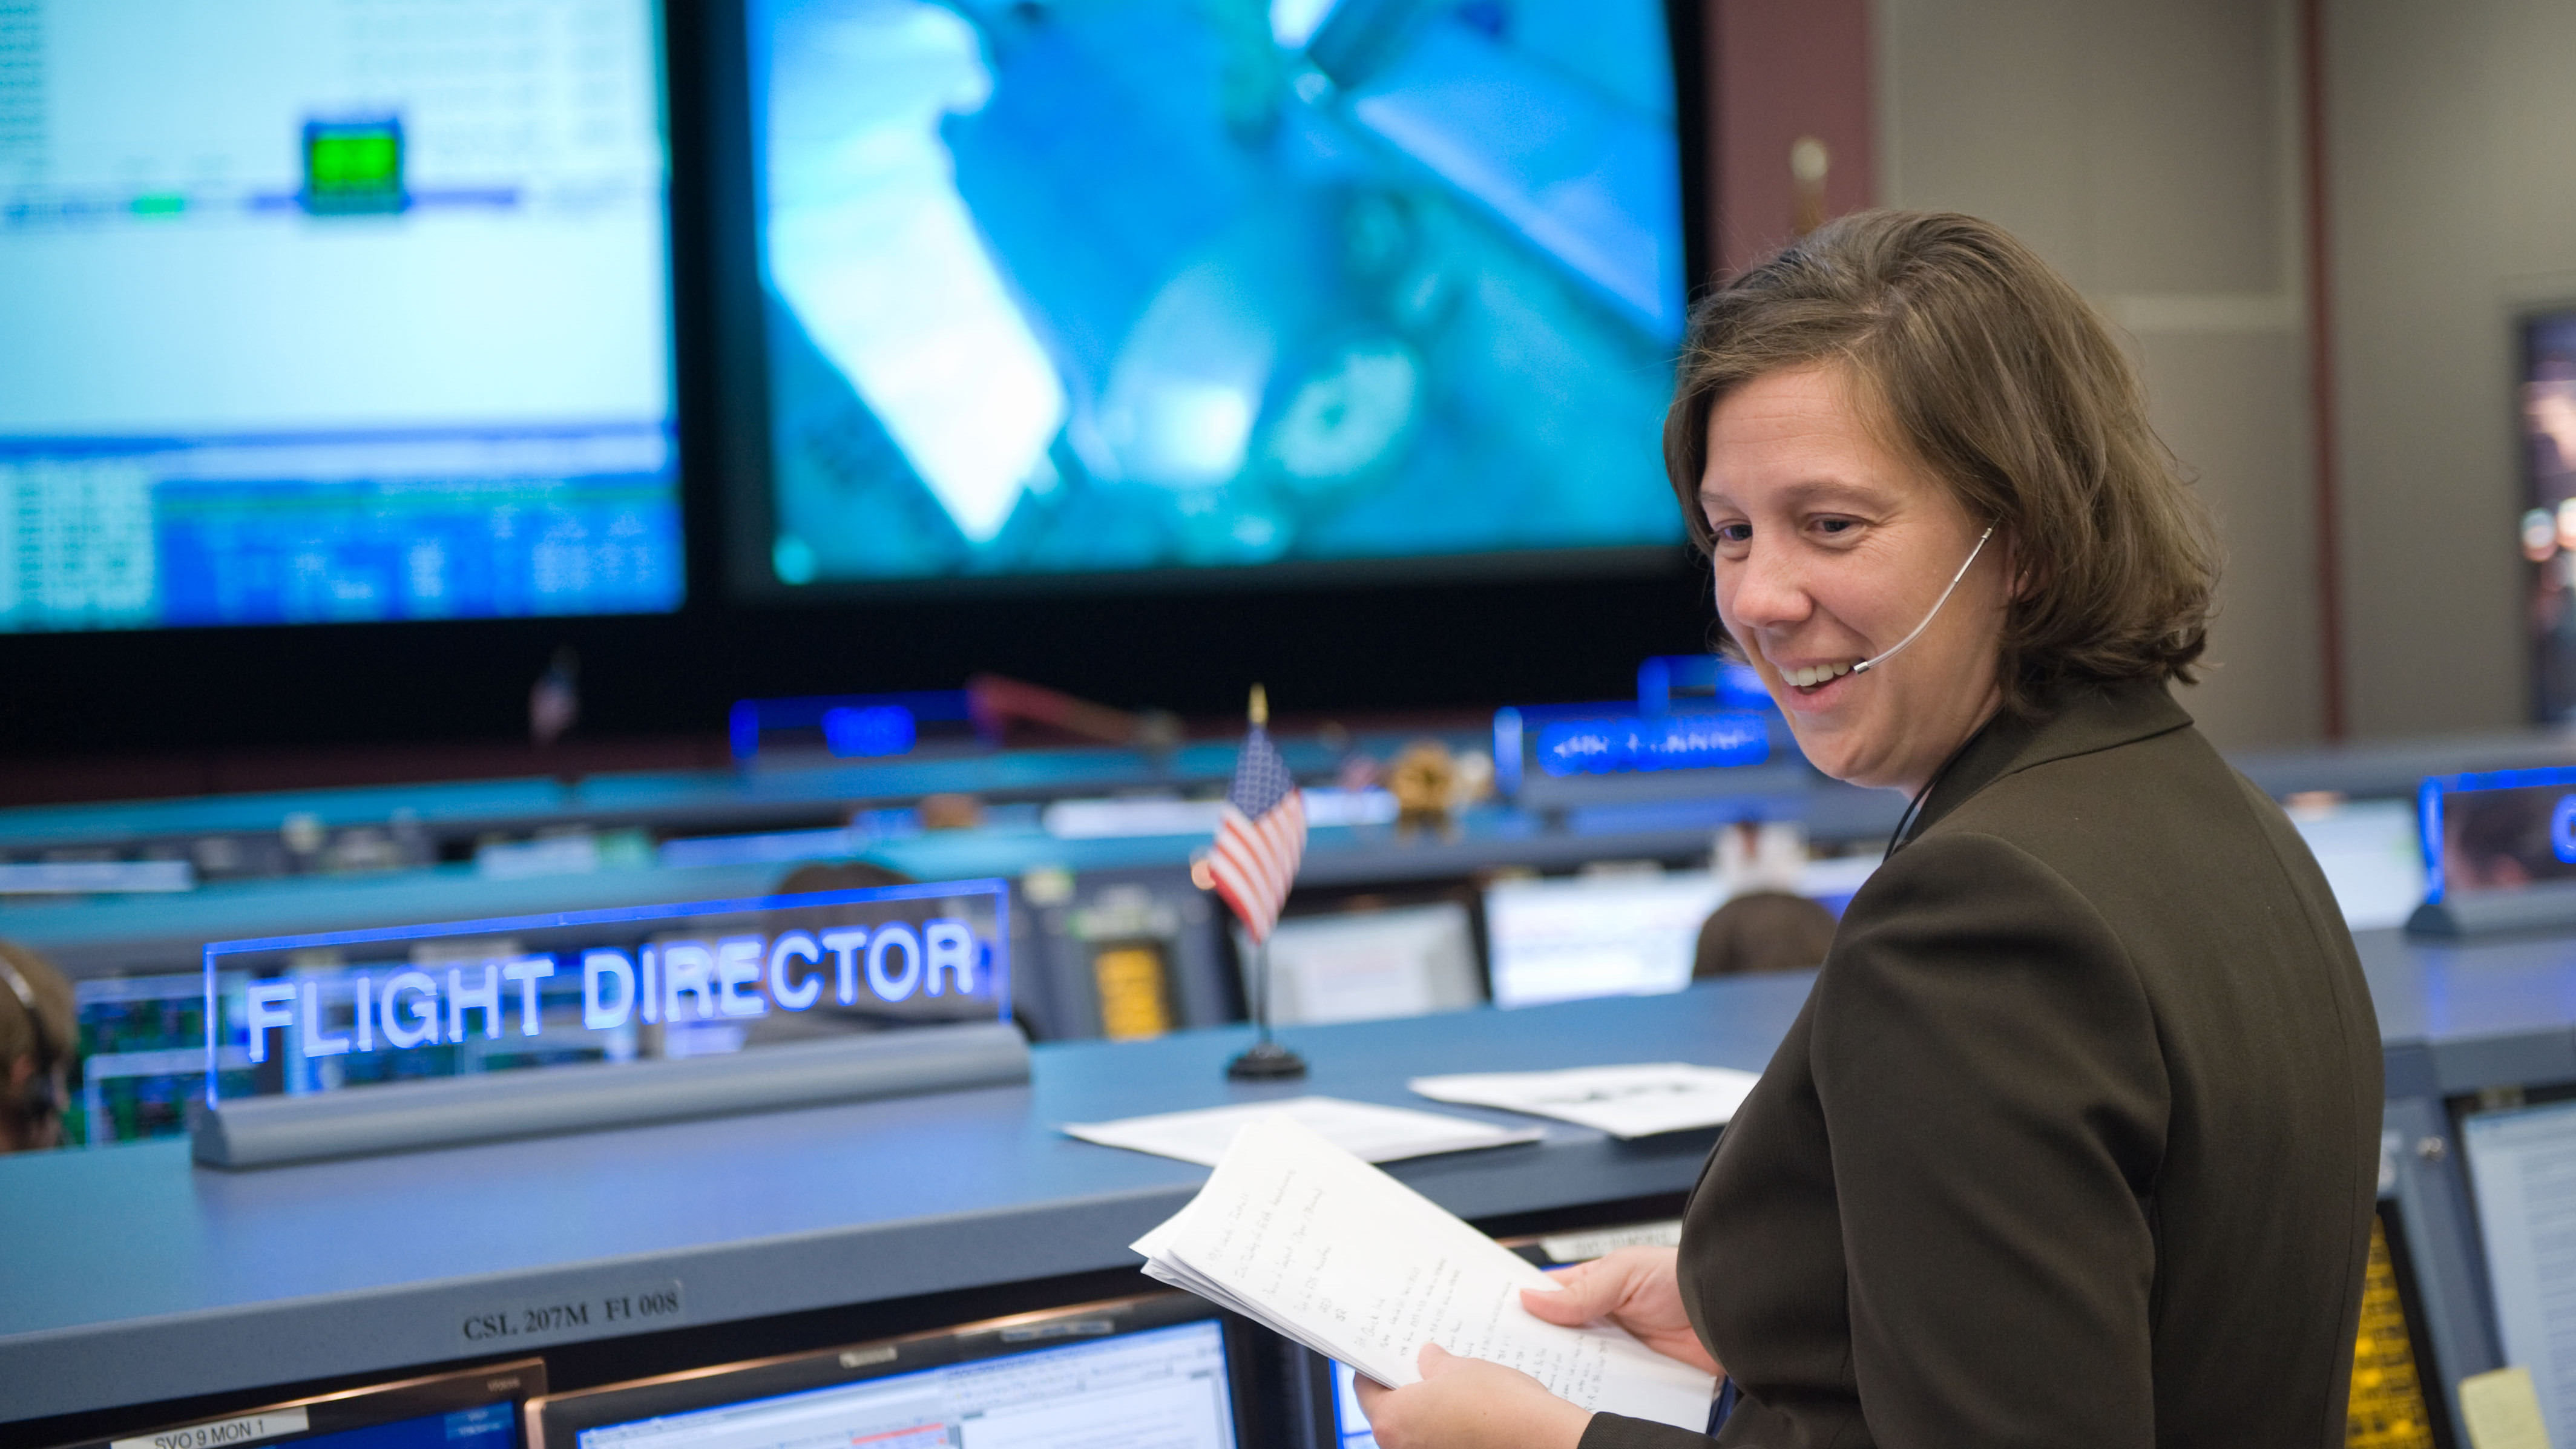 Ridings in 2008 as a flight controller on a space shuttle mission.